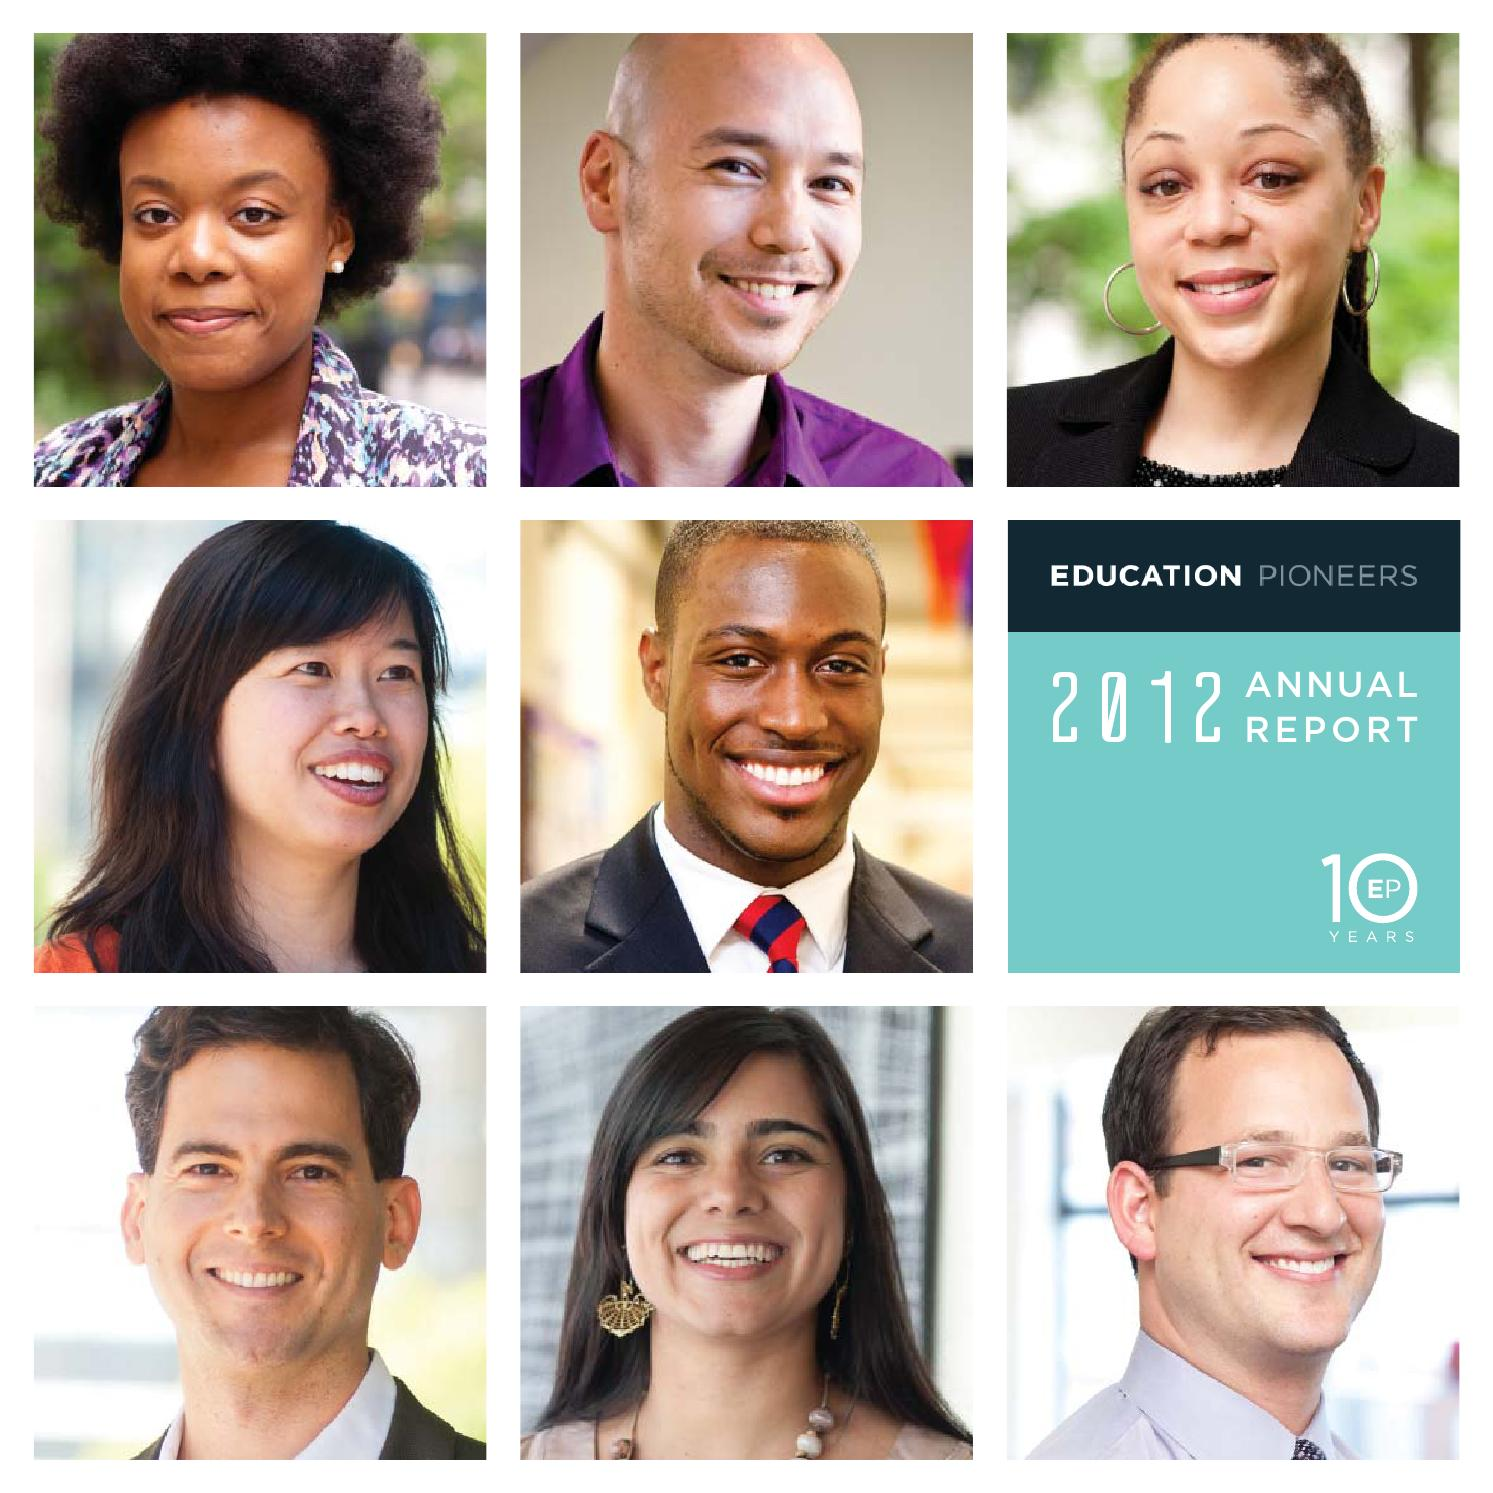 Cohort Professional MBA from golden gate university - reviews?